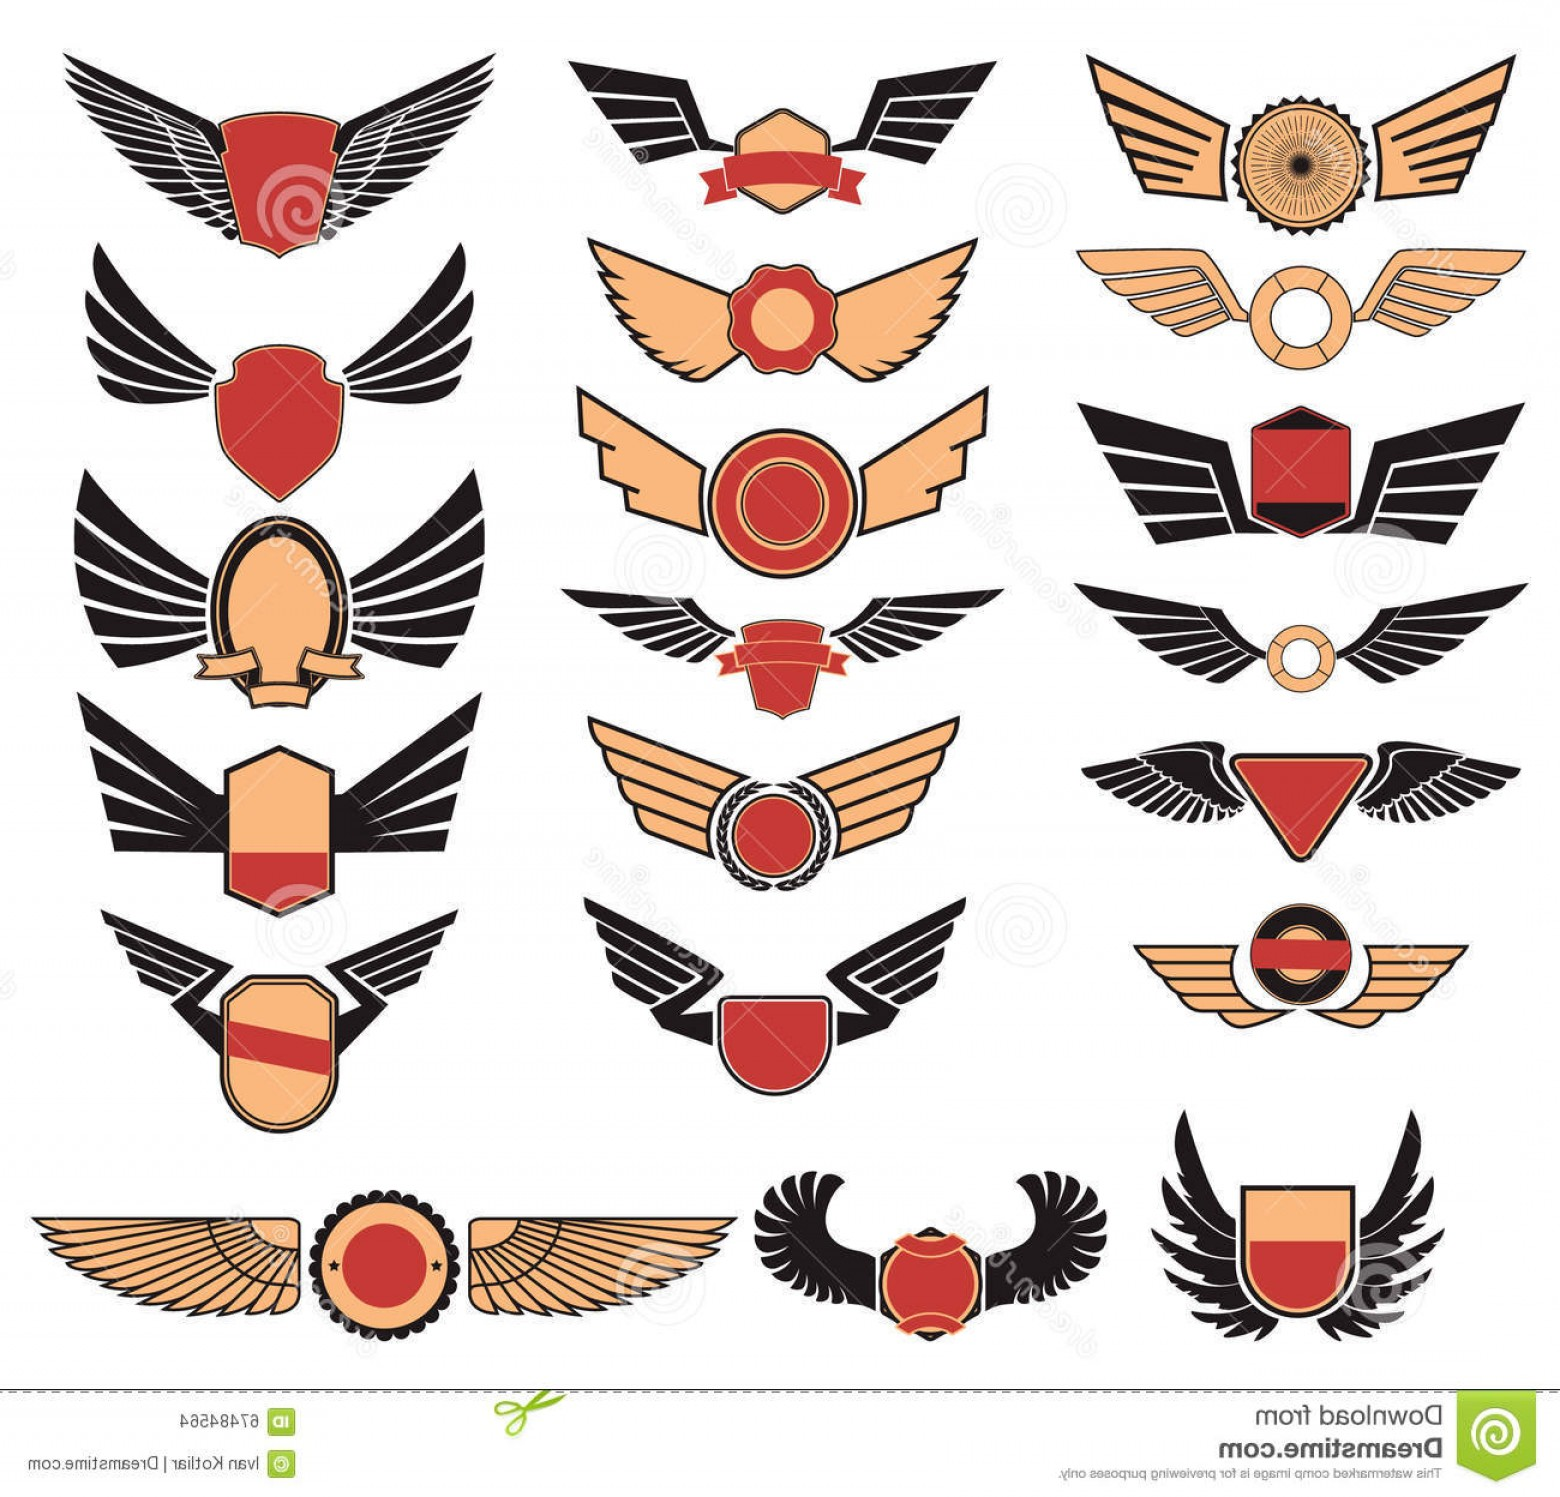 Army Aviator Wings Vector: Royalty Free Stock Photography Aviation Insignia Wings Set Image